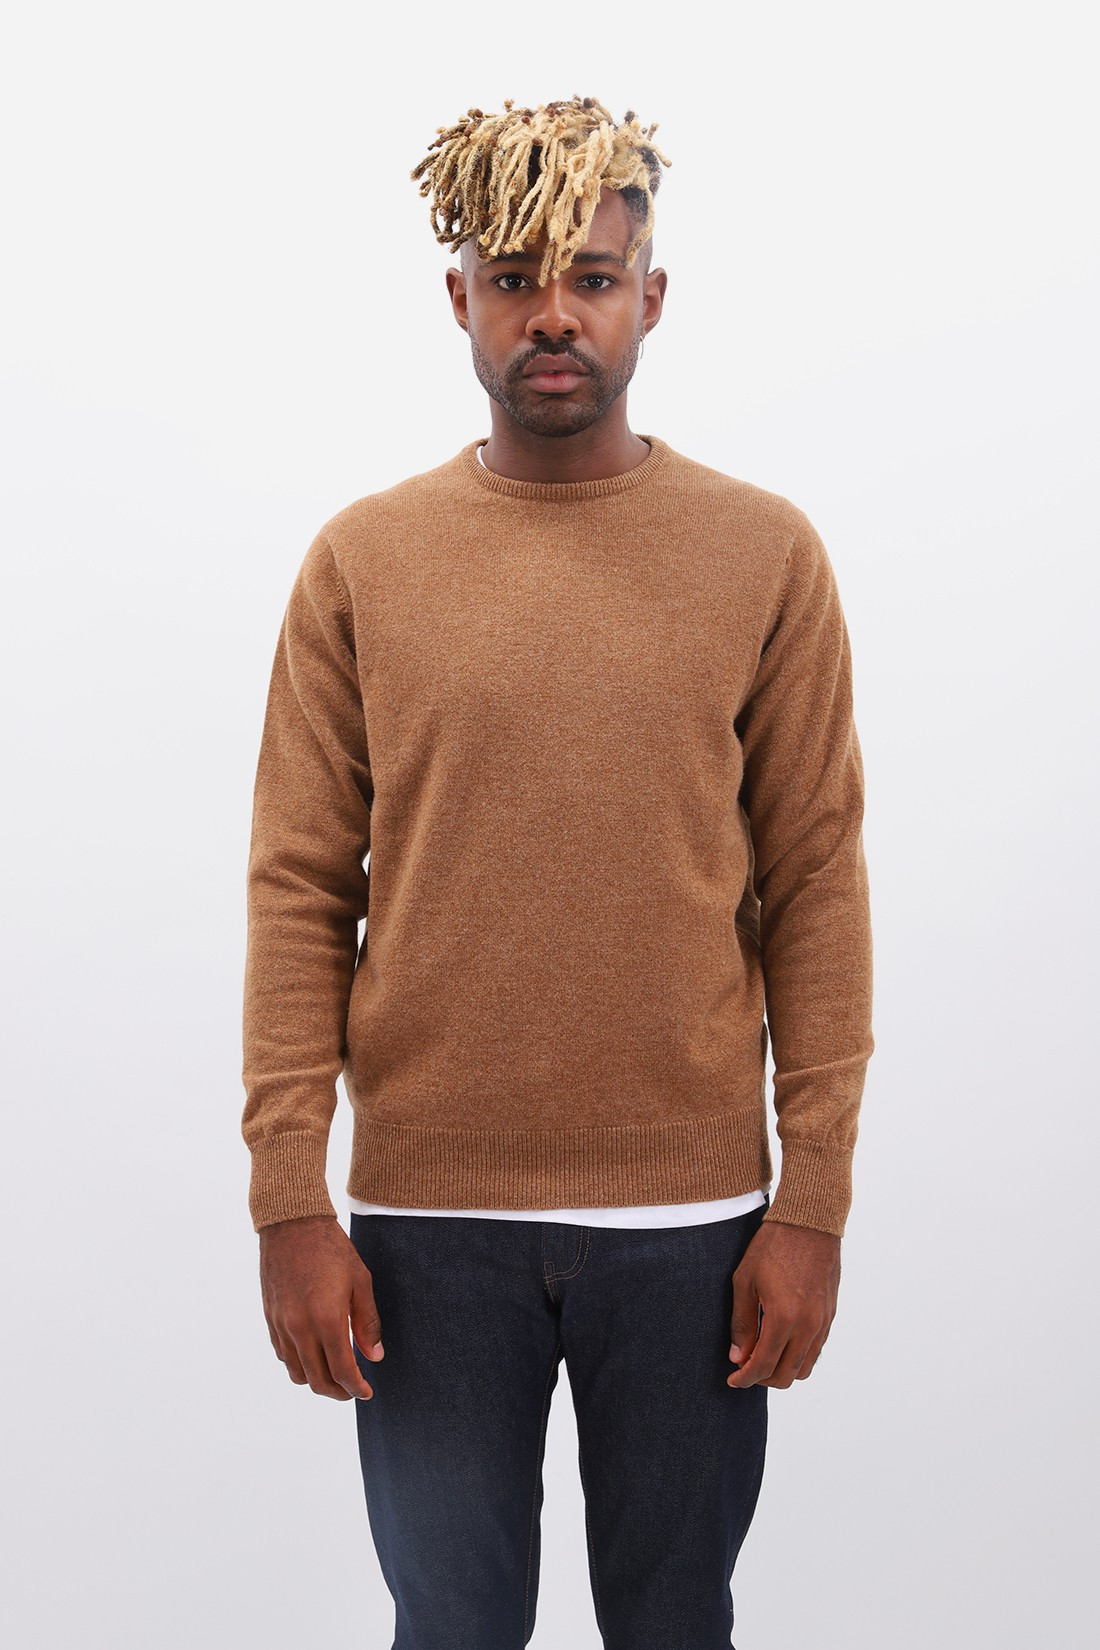 WILLIAM LOCKIE / Lambswool jumper crew neck Savannah